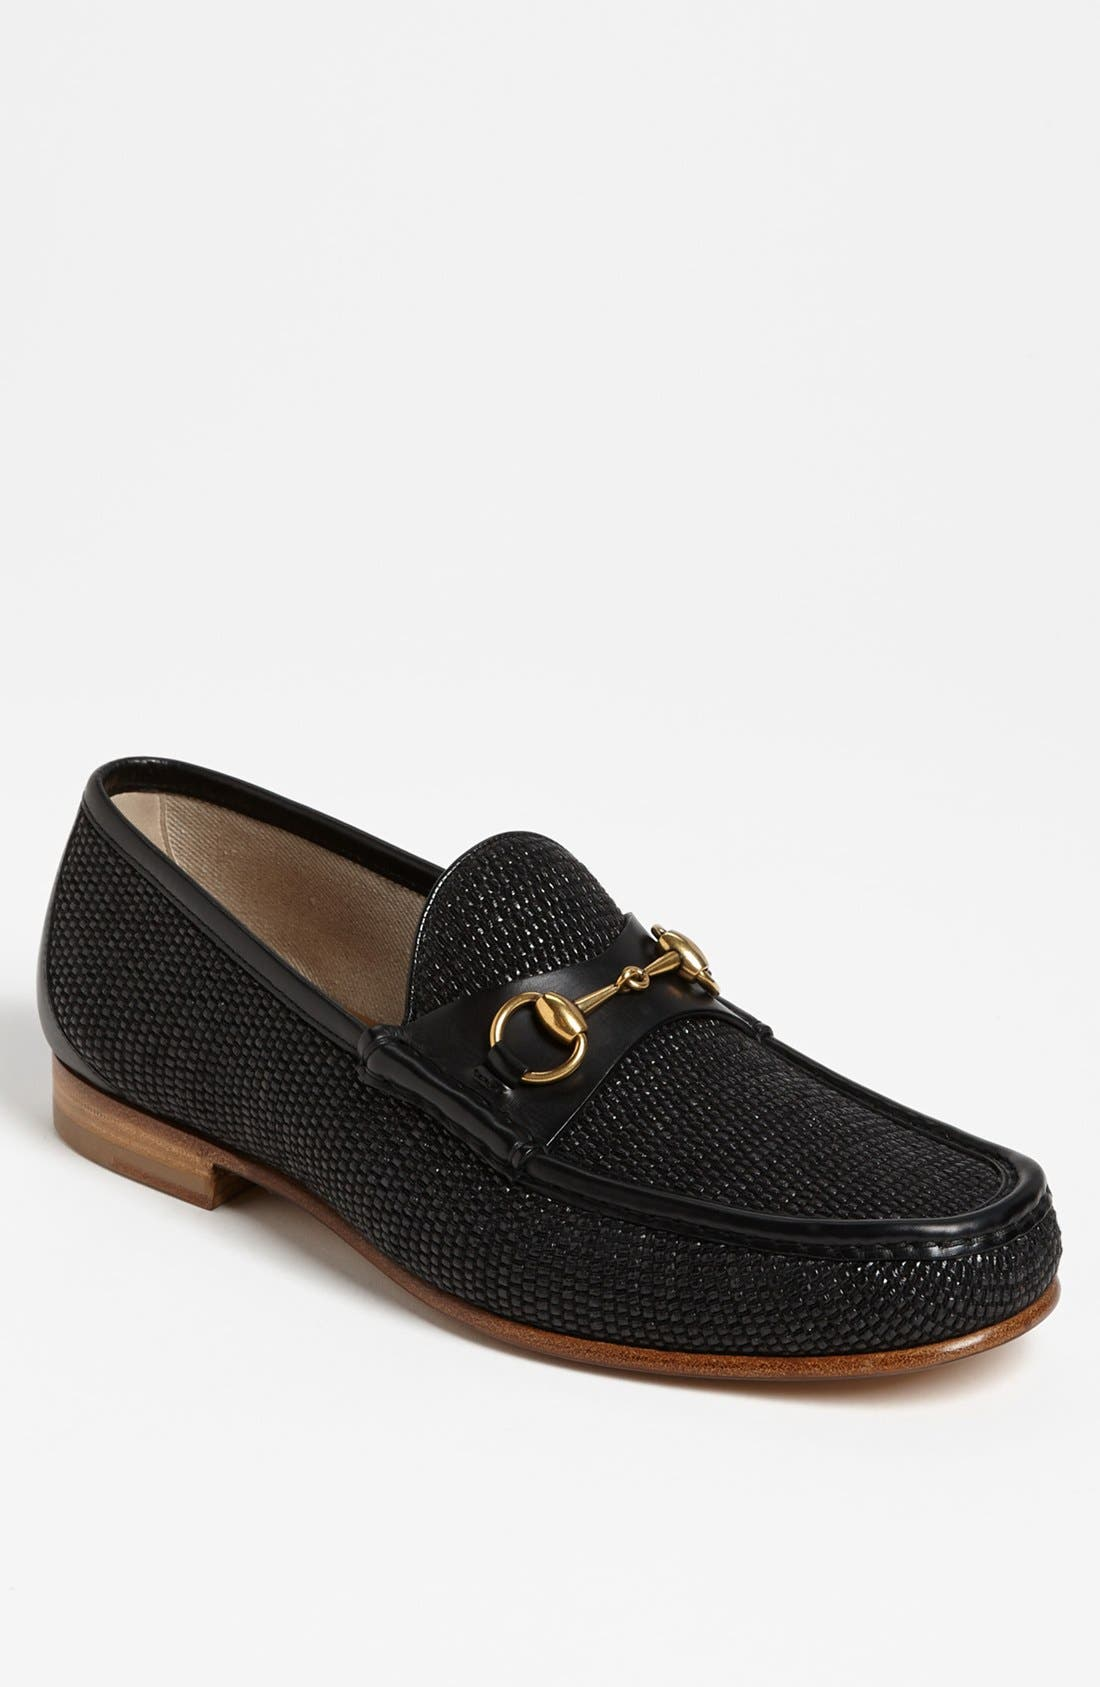 Alternate Image 1 Selected - Gucci 'Roos' Straw Bit Loafer